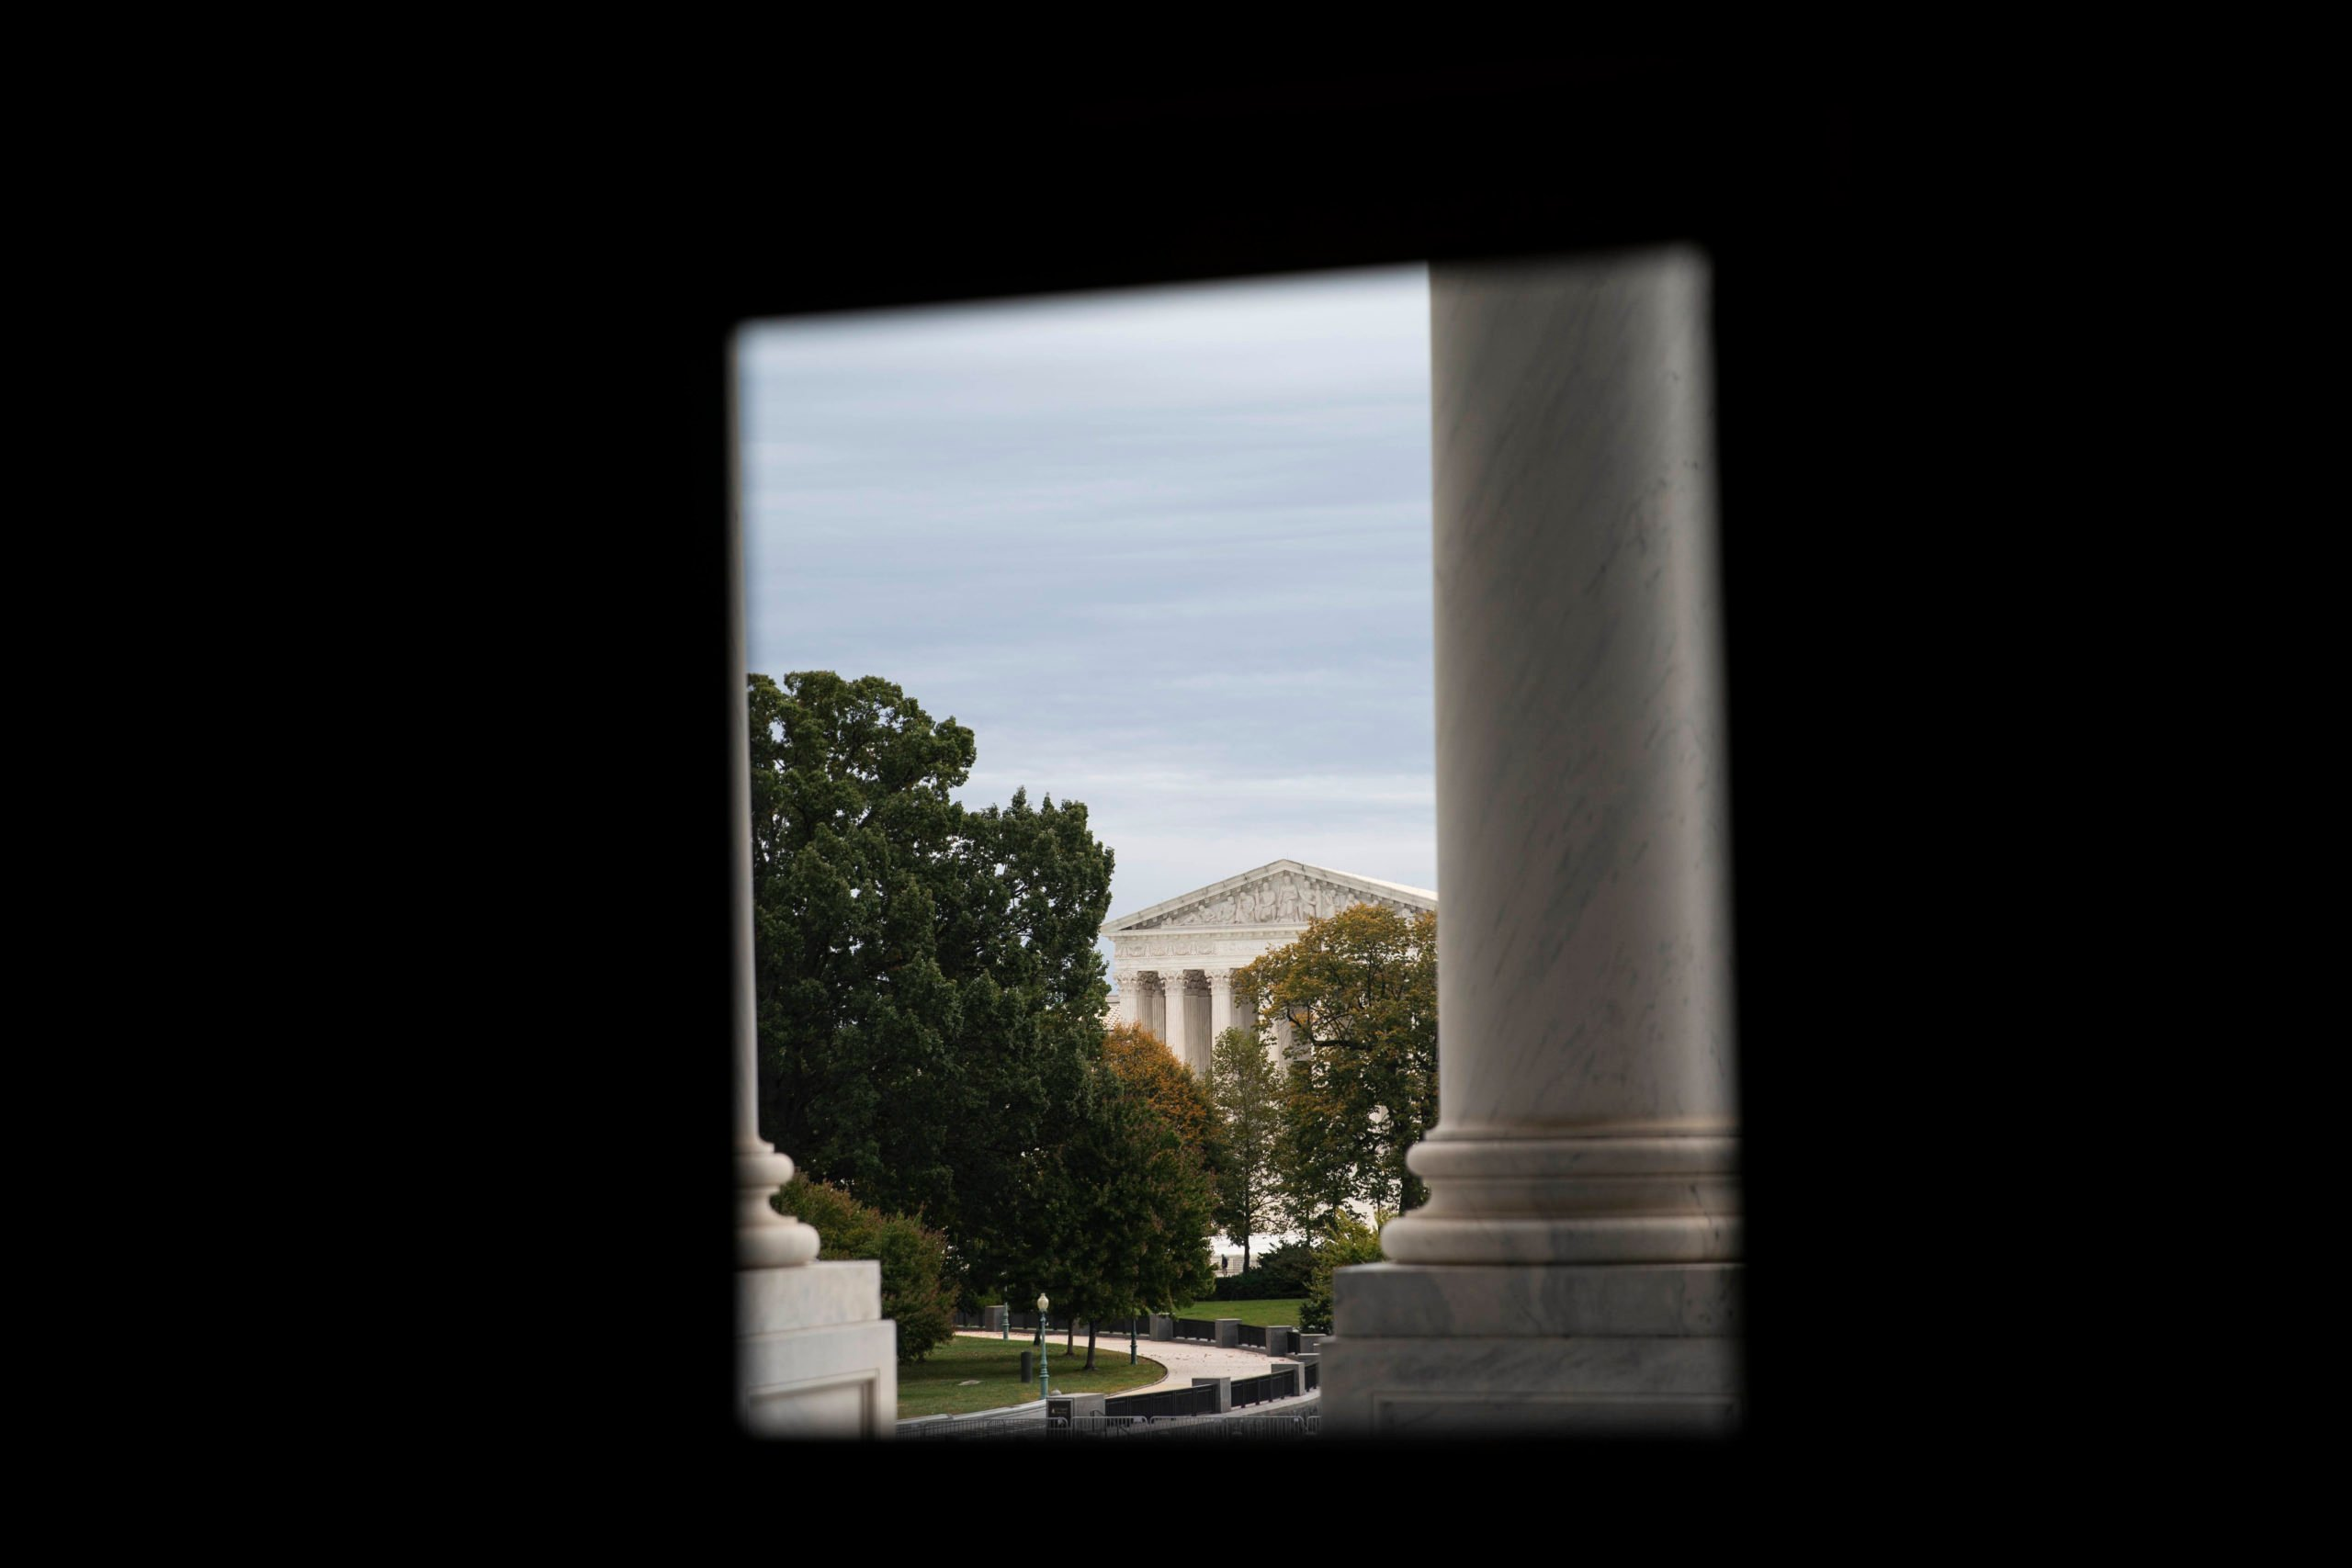 WASHINGTON, DC - OCTOBER 16: The Supreme Court of the United States is seen from a window in the U.S. Capitol building on October 16, 2020 on Capitol Hill in Washington, DC. With less than three weeks before the November presidential elections, the Trump administration and House Speaker Nancy Pelosi are continuing their ongoingnegotiations for a stimulus deal. (Photo by Sarah Silbiger/Getty Images)